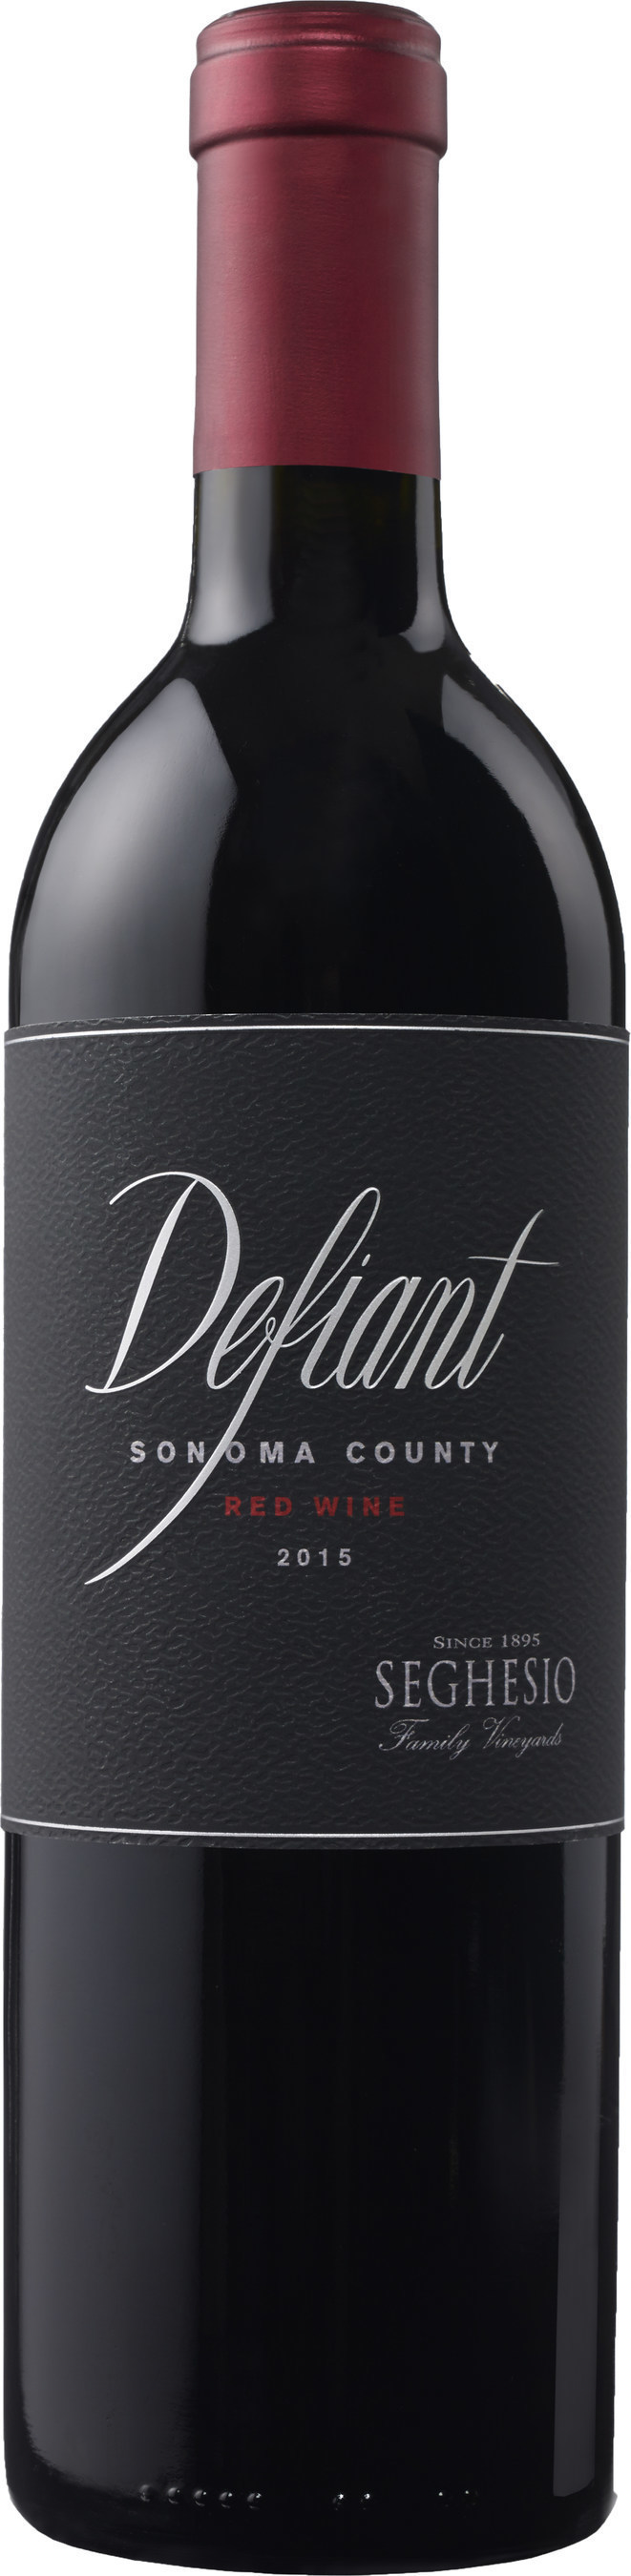 Defiant: A New Zinfandel-Based Red Blend by Seghesio Family Vineyards